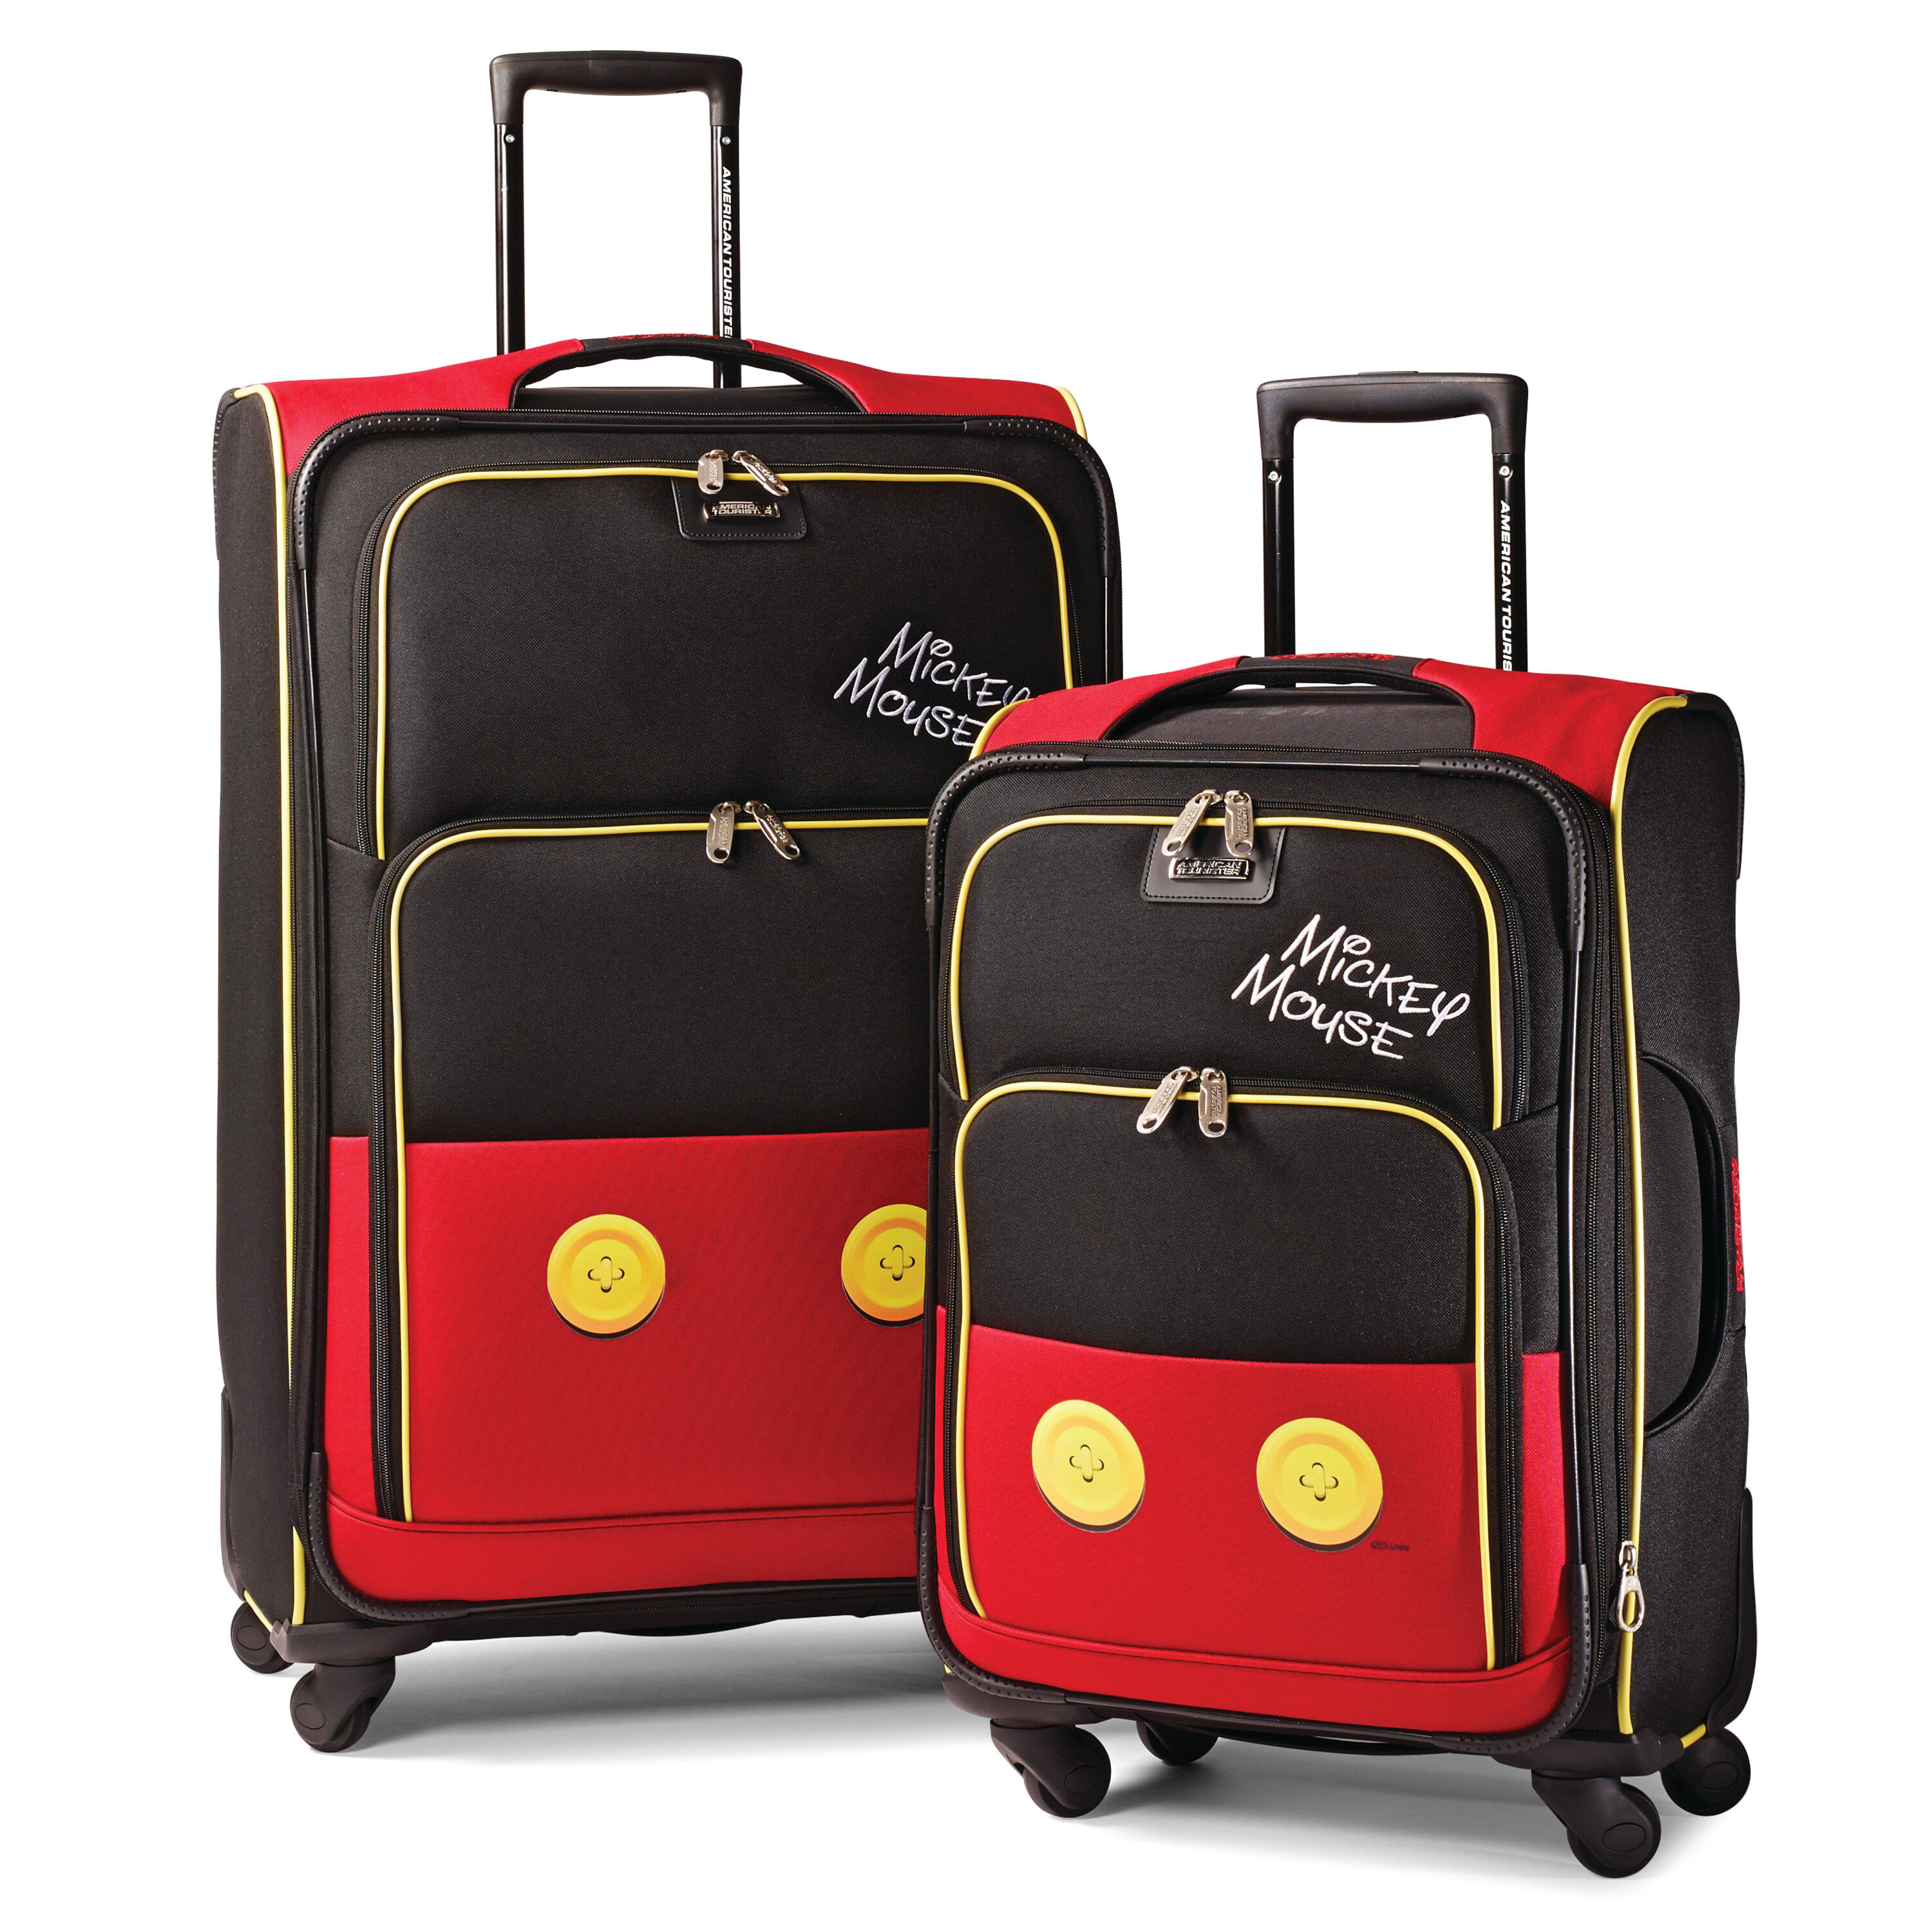 American Tourister Disney Softside Luggage 2-Piece Set